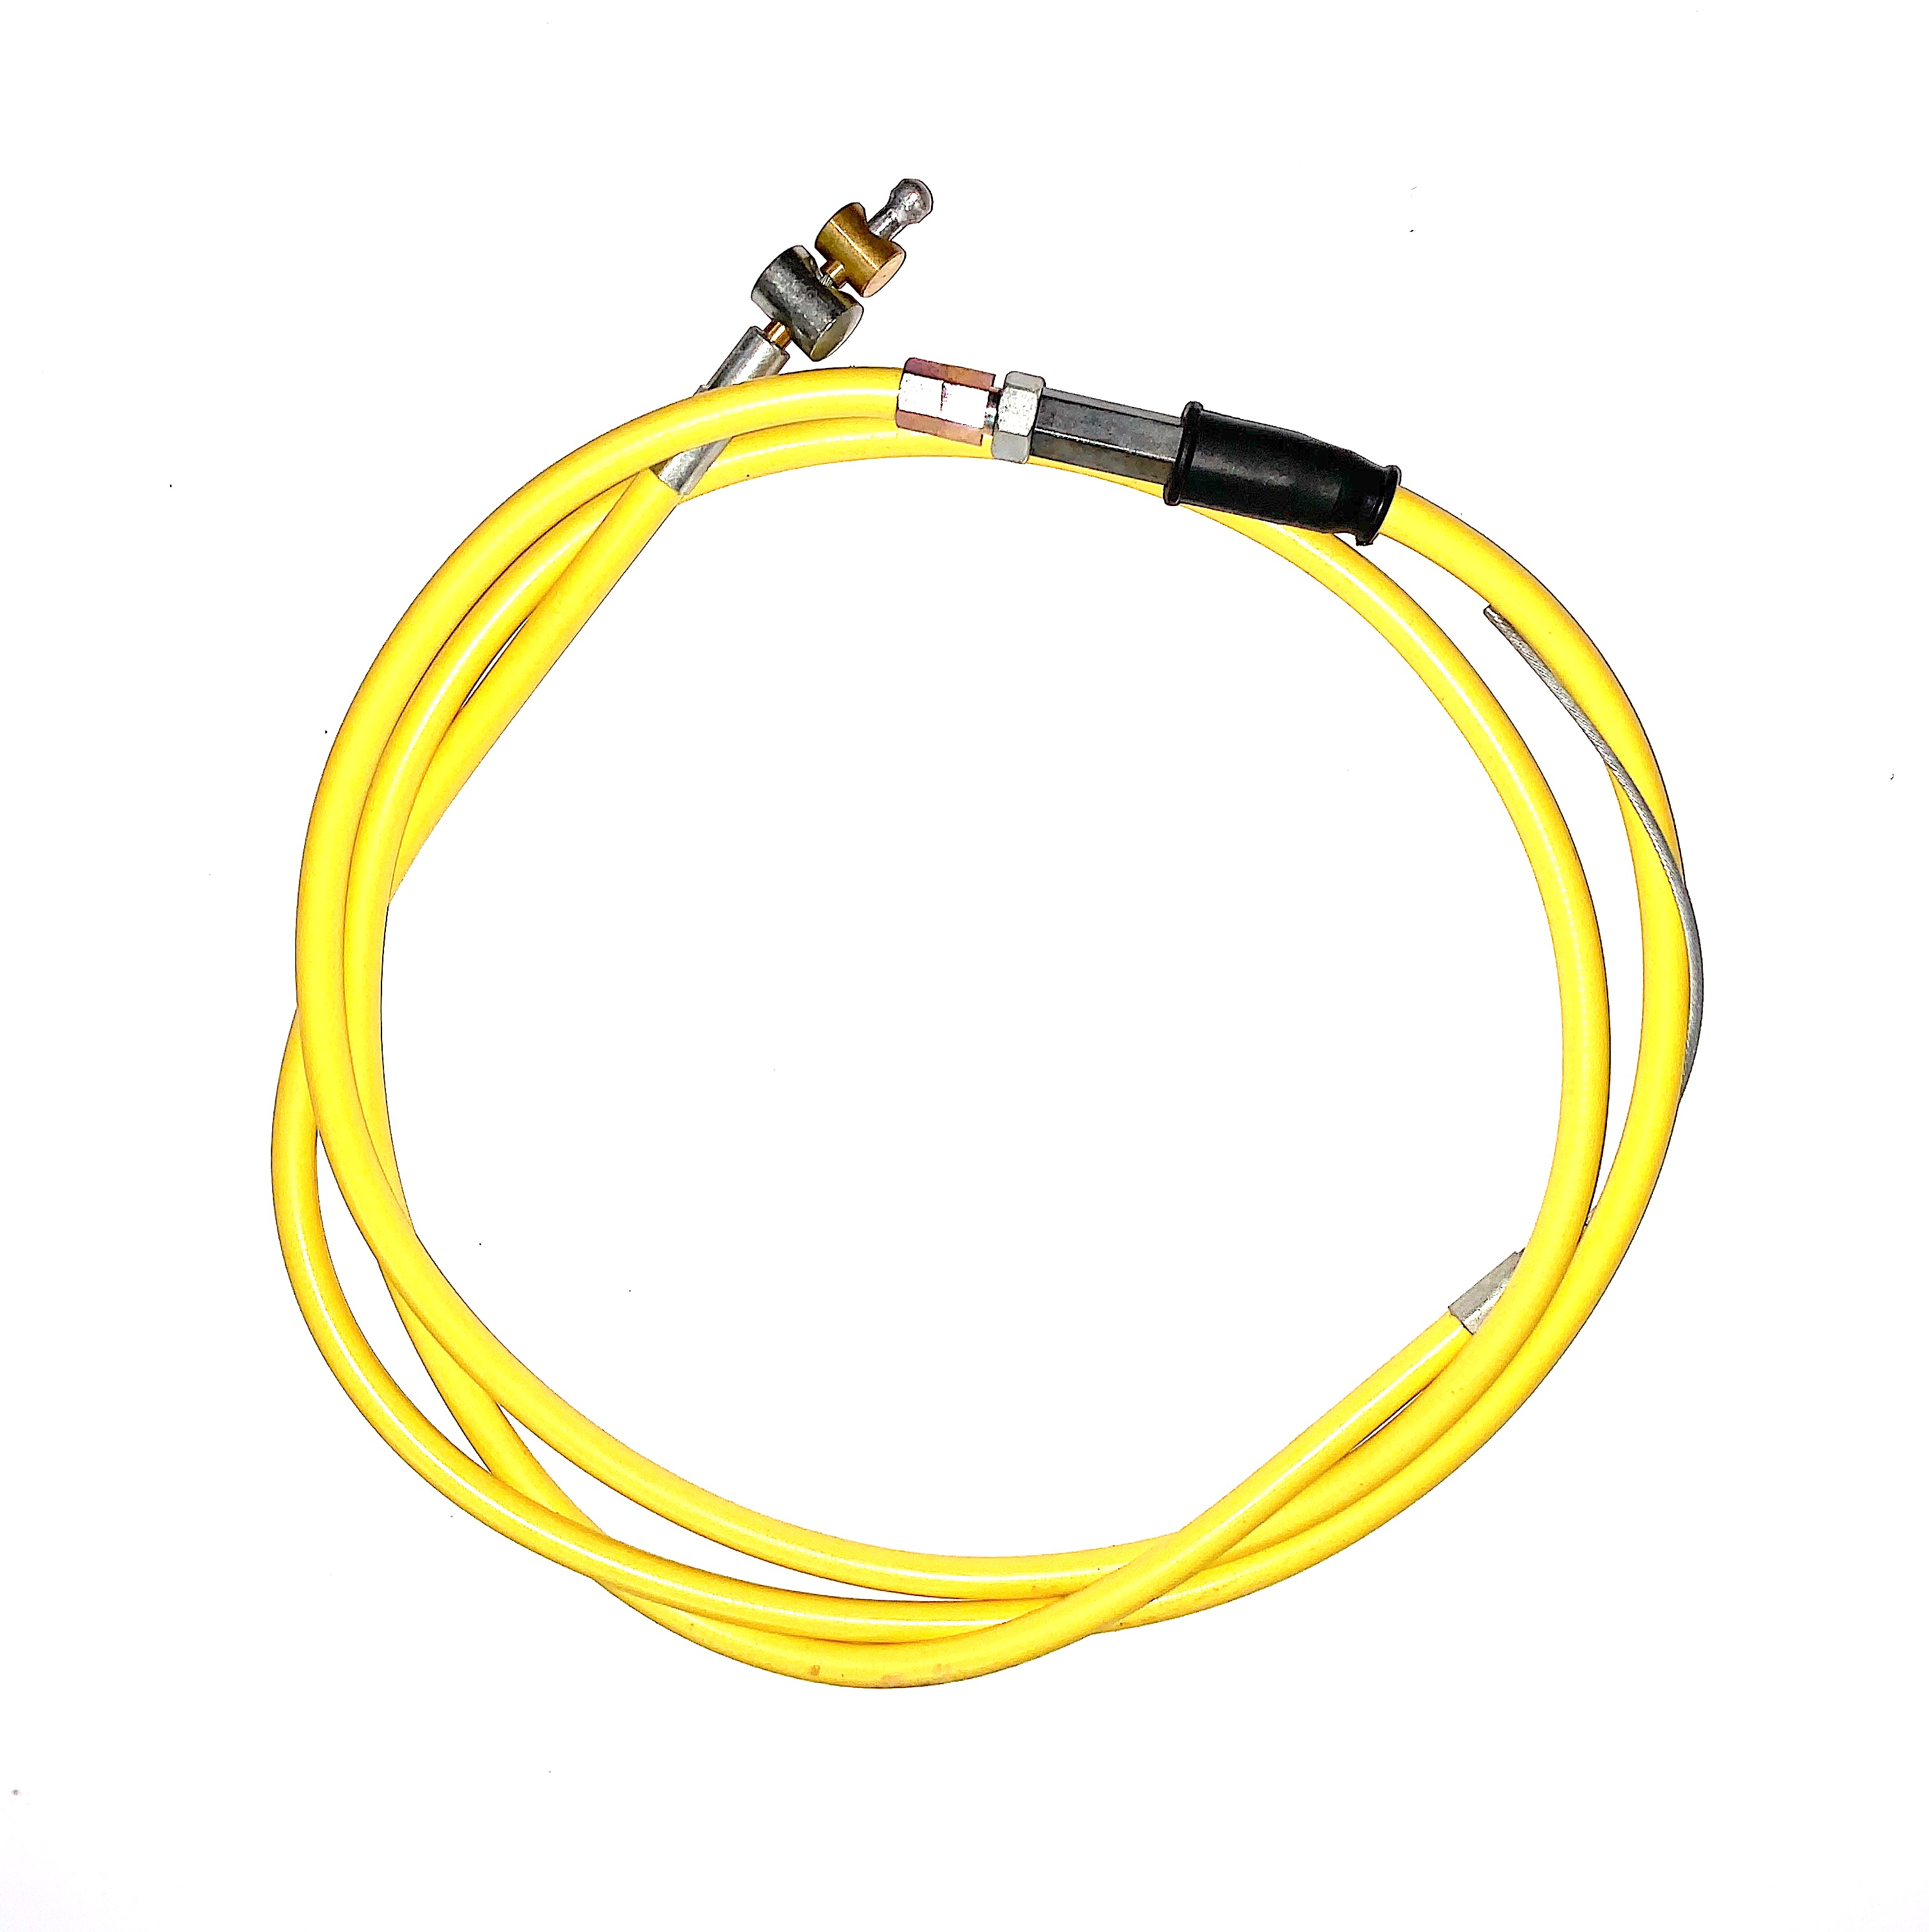 VENHILL UNIVERSAL BEWLEY GEAR BOX CABLE KIT FOR MAGURA OR DOHERTY LEVER 1.4M - STANDARD - YELLOW